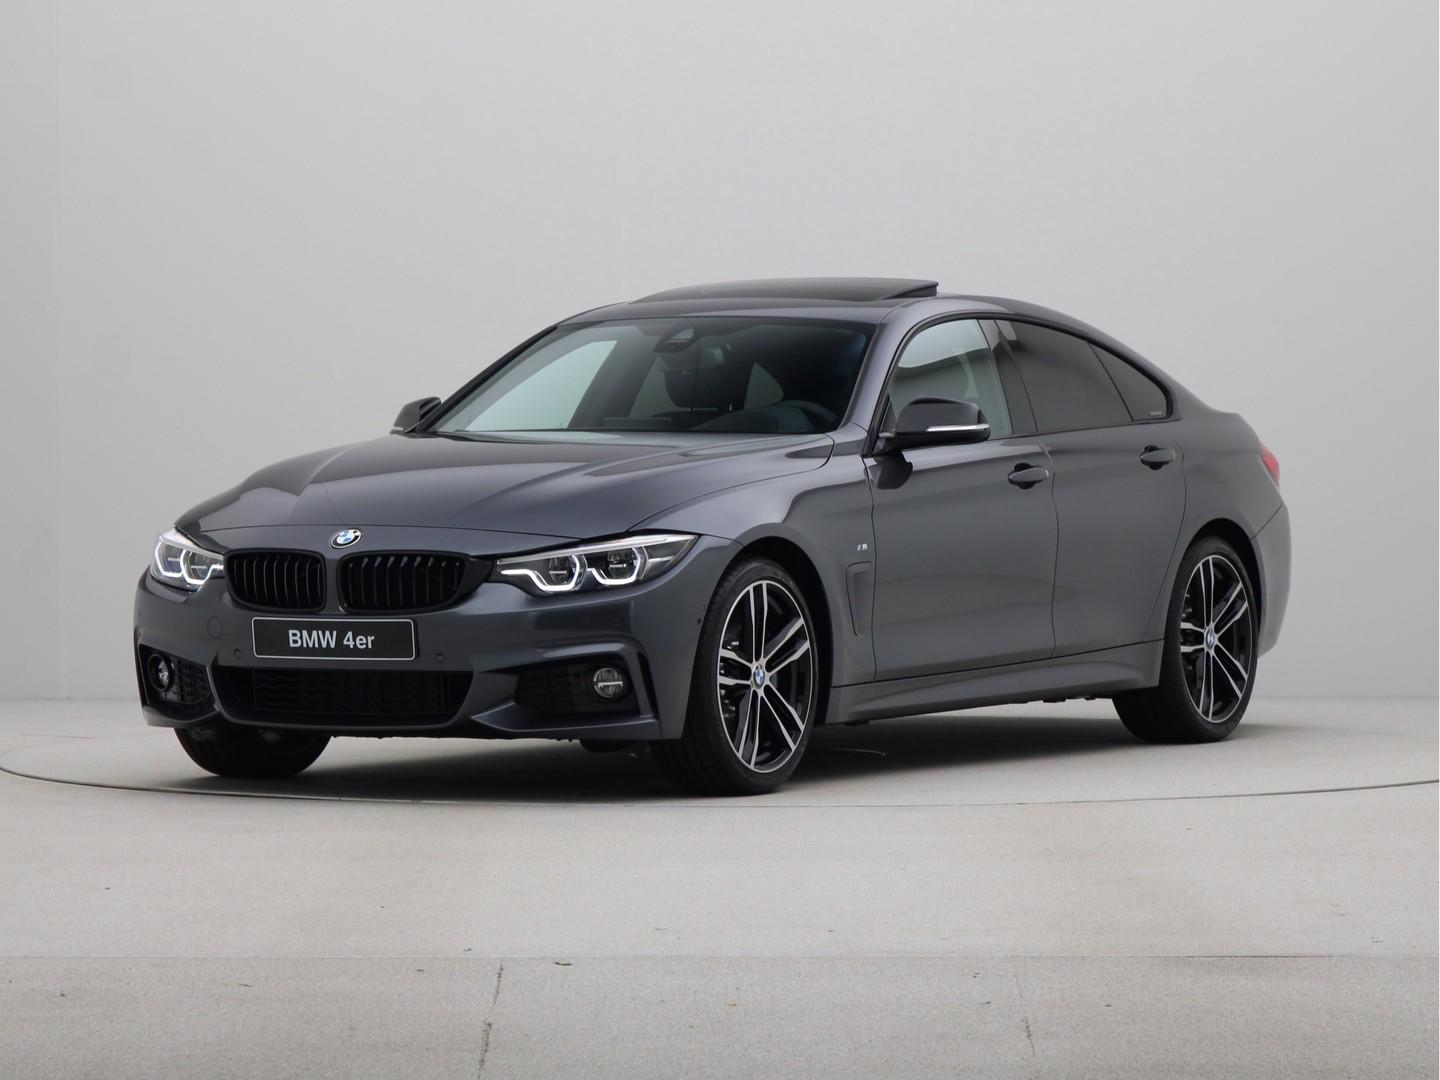 Bmw 4 serie Gran coupé 430i high executive edition m-sport